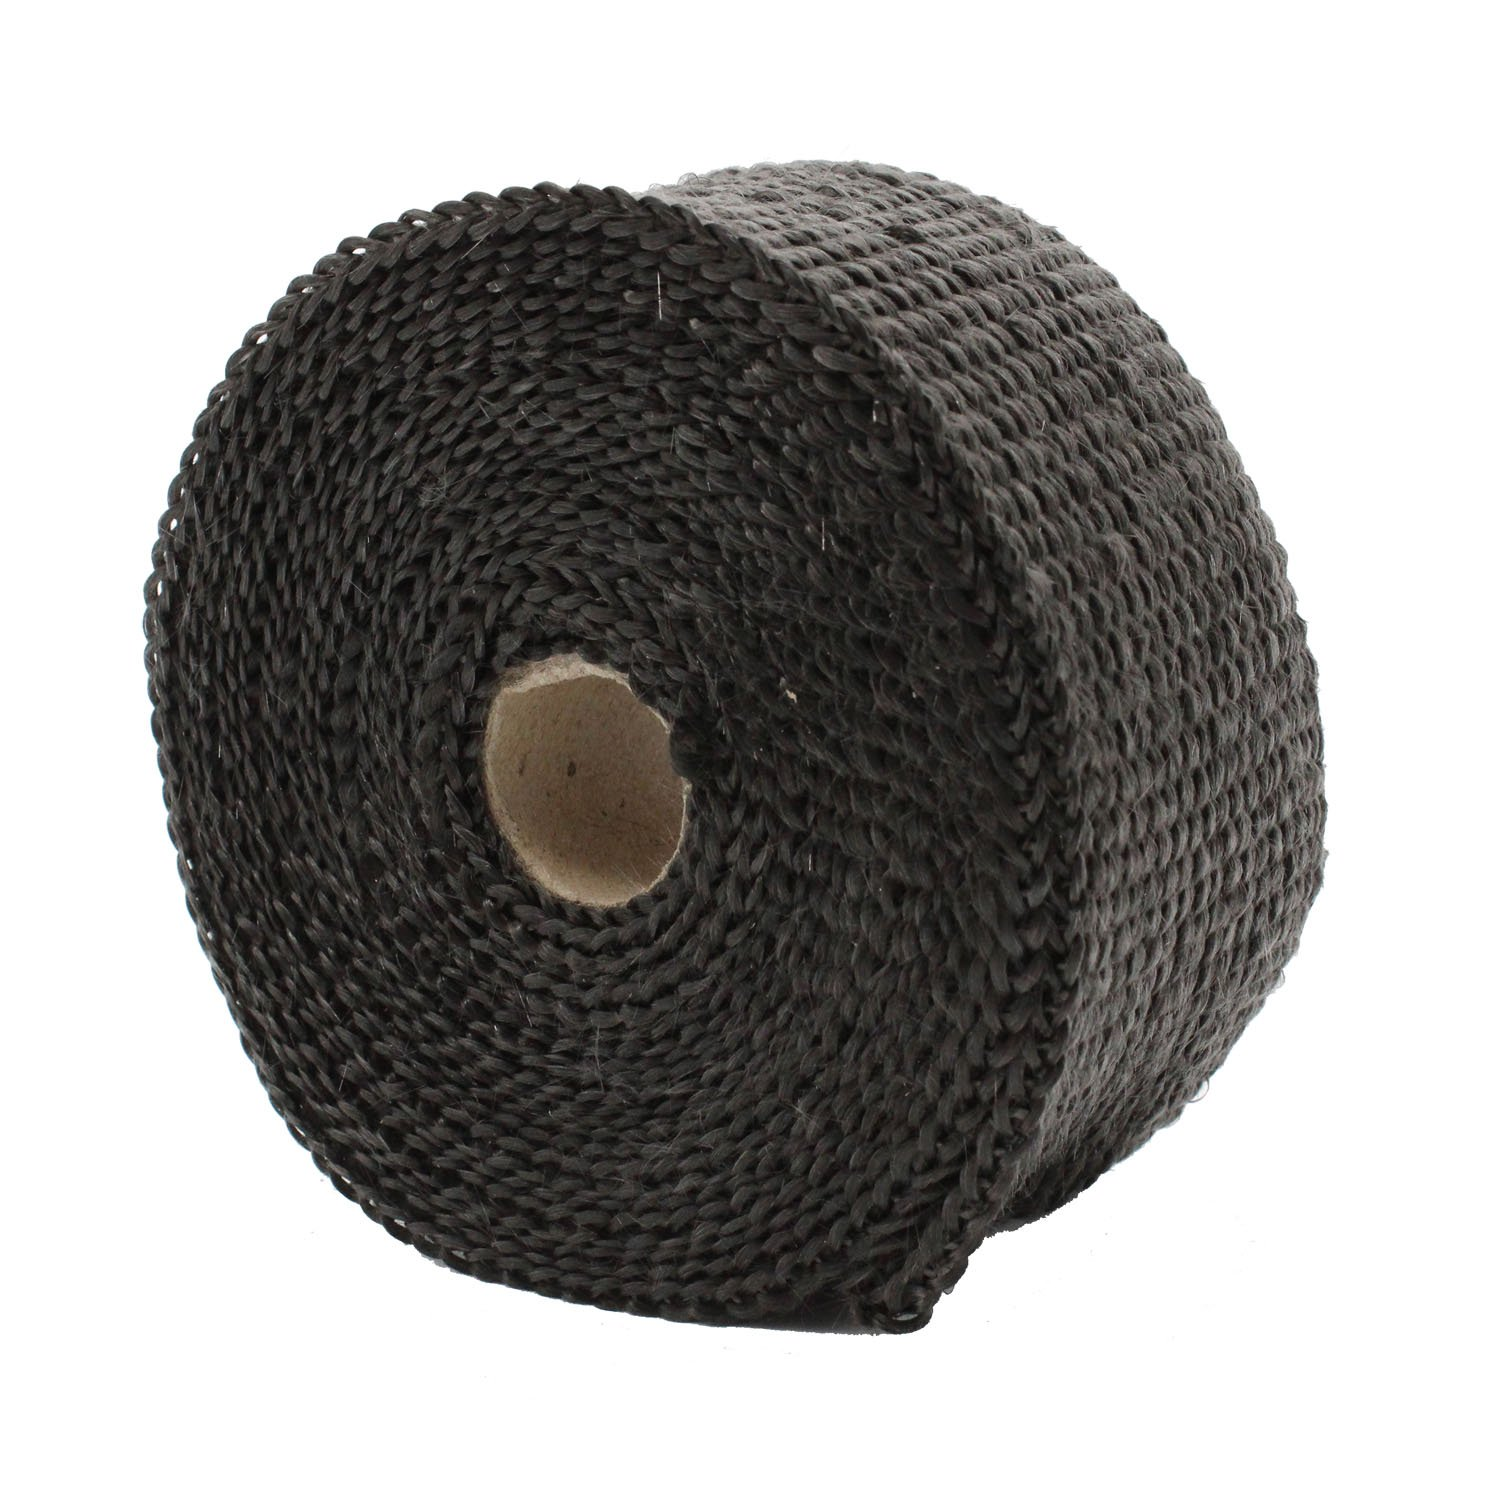 TAKPART 5M x 5cm Car Titanium Exhaust Heat Ties Wrap Roll Black Tape for Motorcycle with 10 Cable Ties 20cm